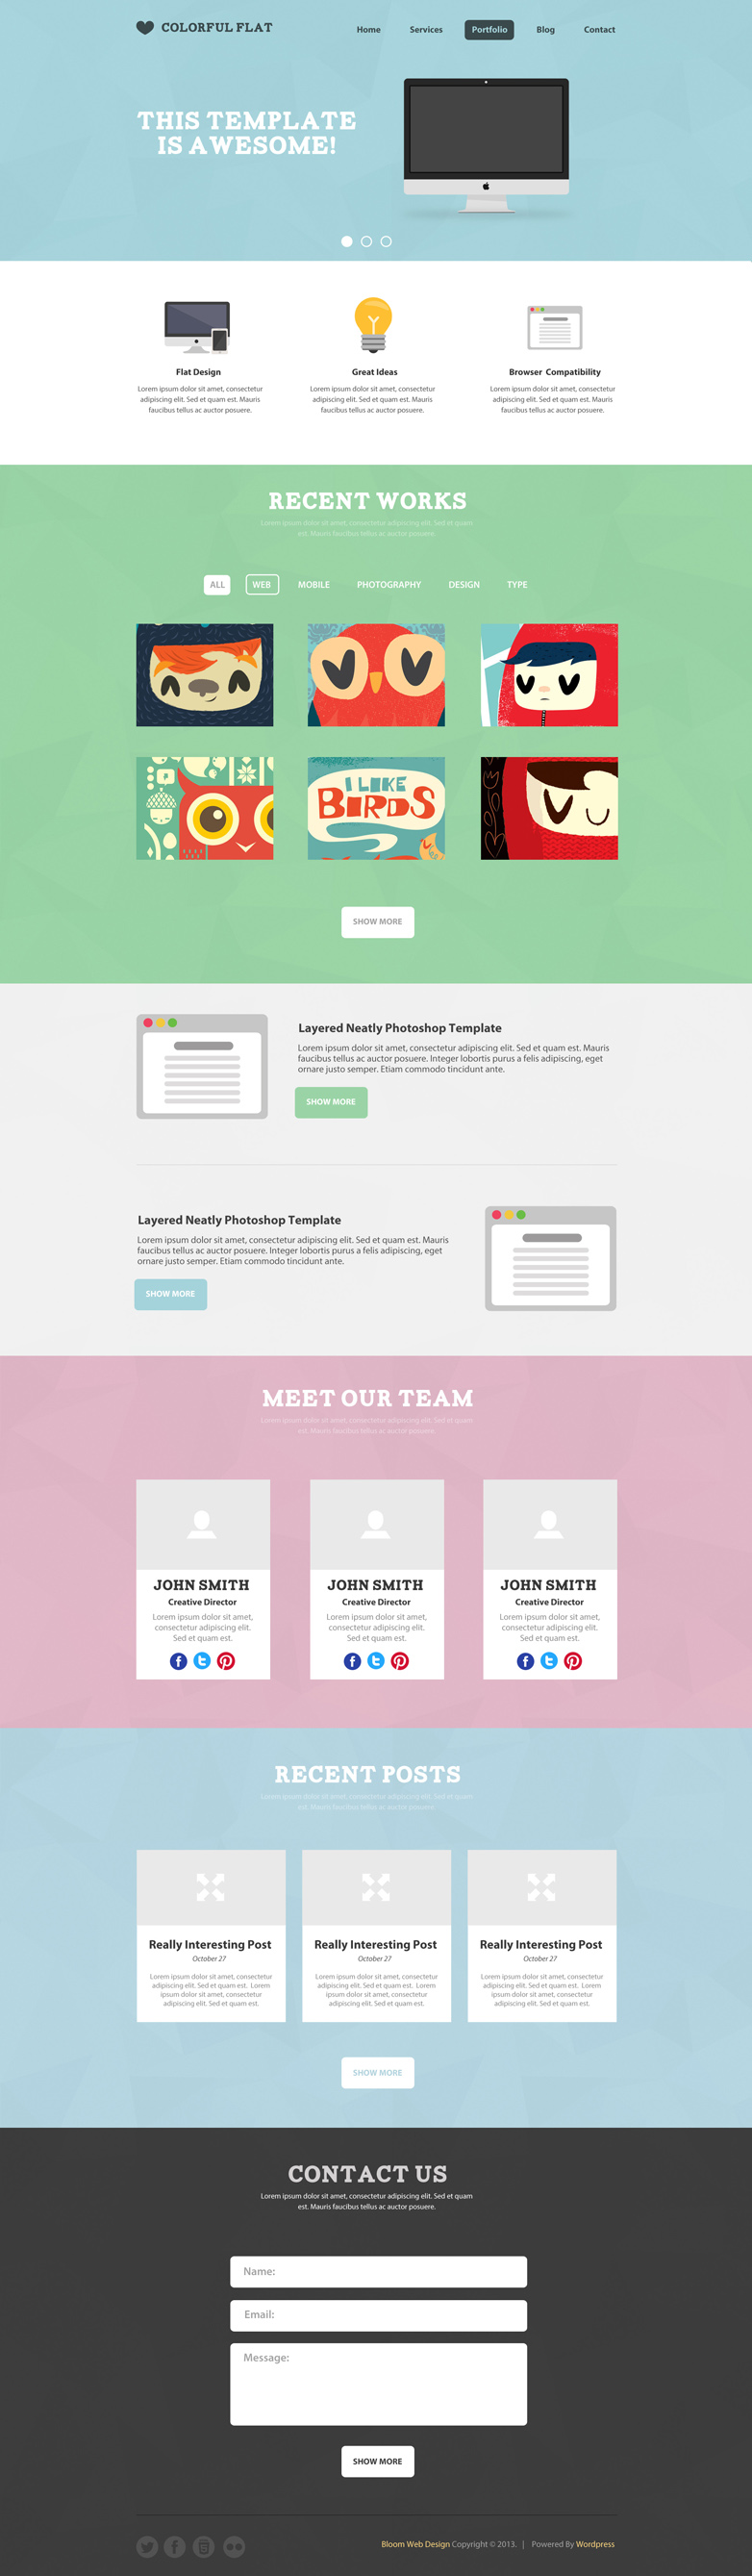 Free Flat One Page Website Psd Template Free Psd Template One Pager Web Template Design One Page Website Psd Template Free